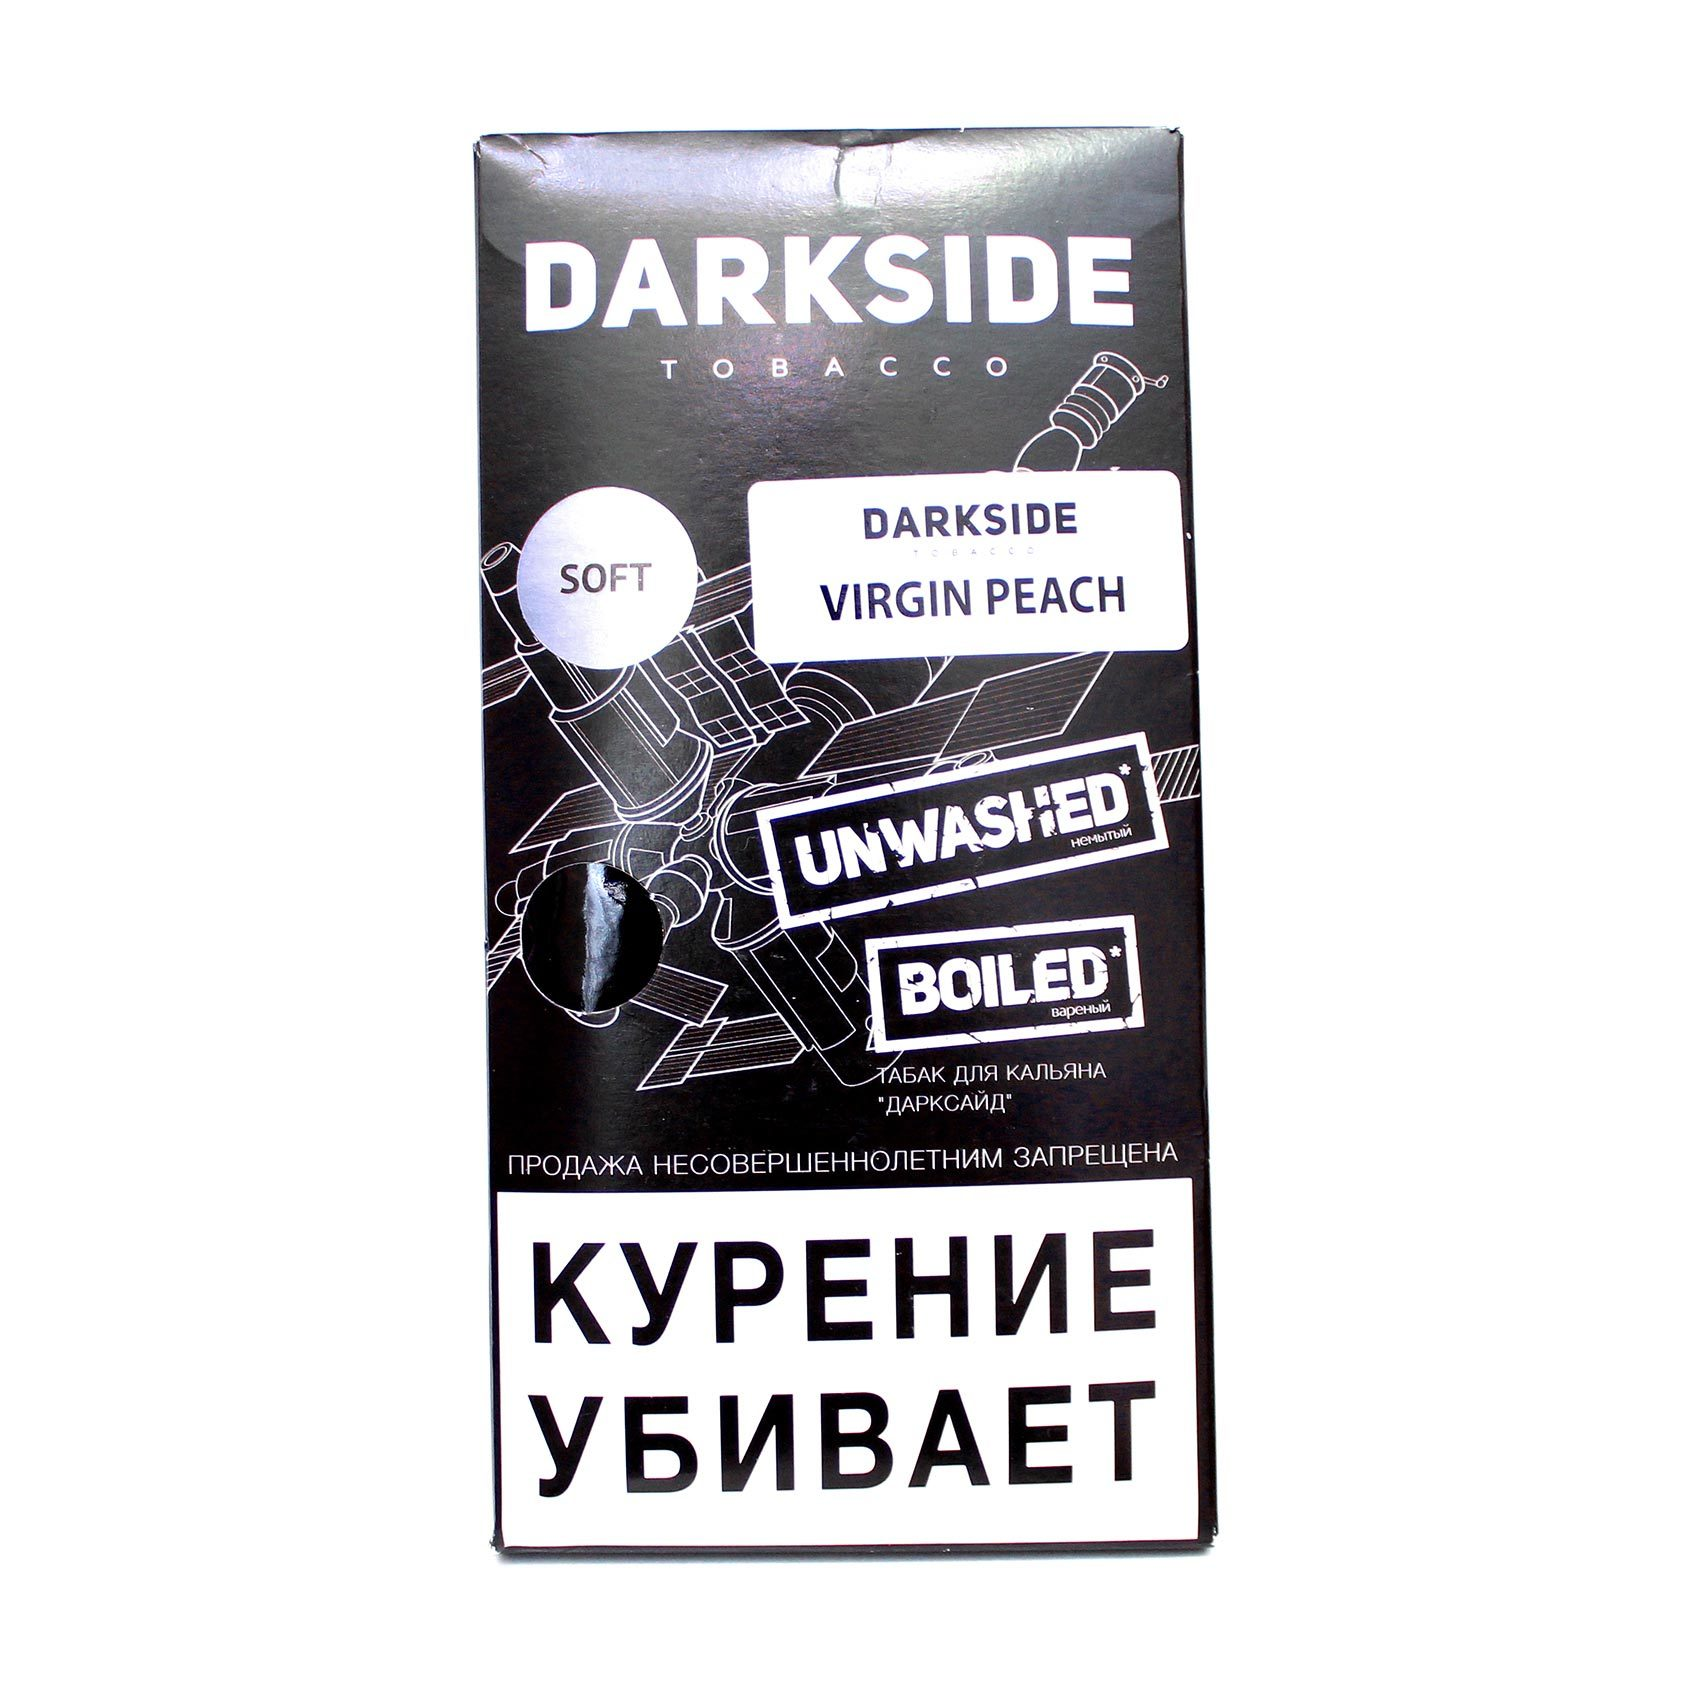 Табак для кальяна Dark Side Soft 250 гр. Virgin Peach